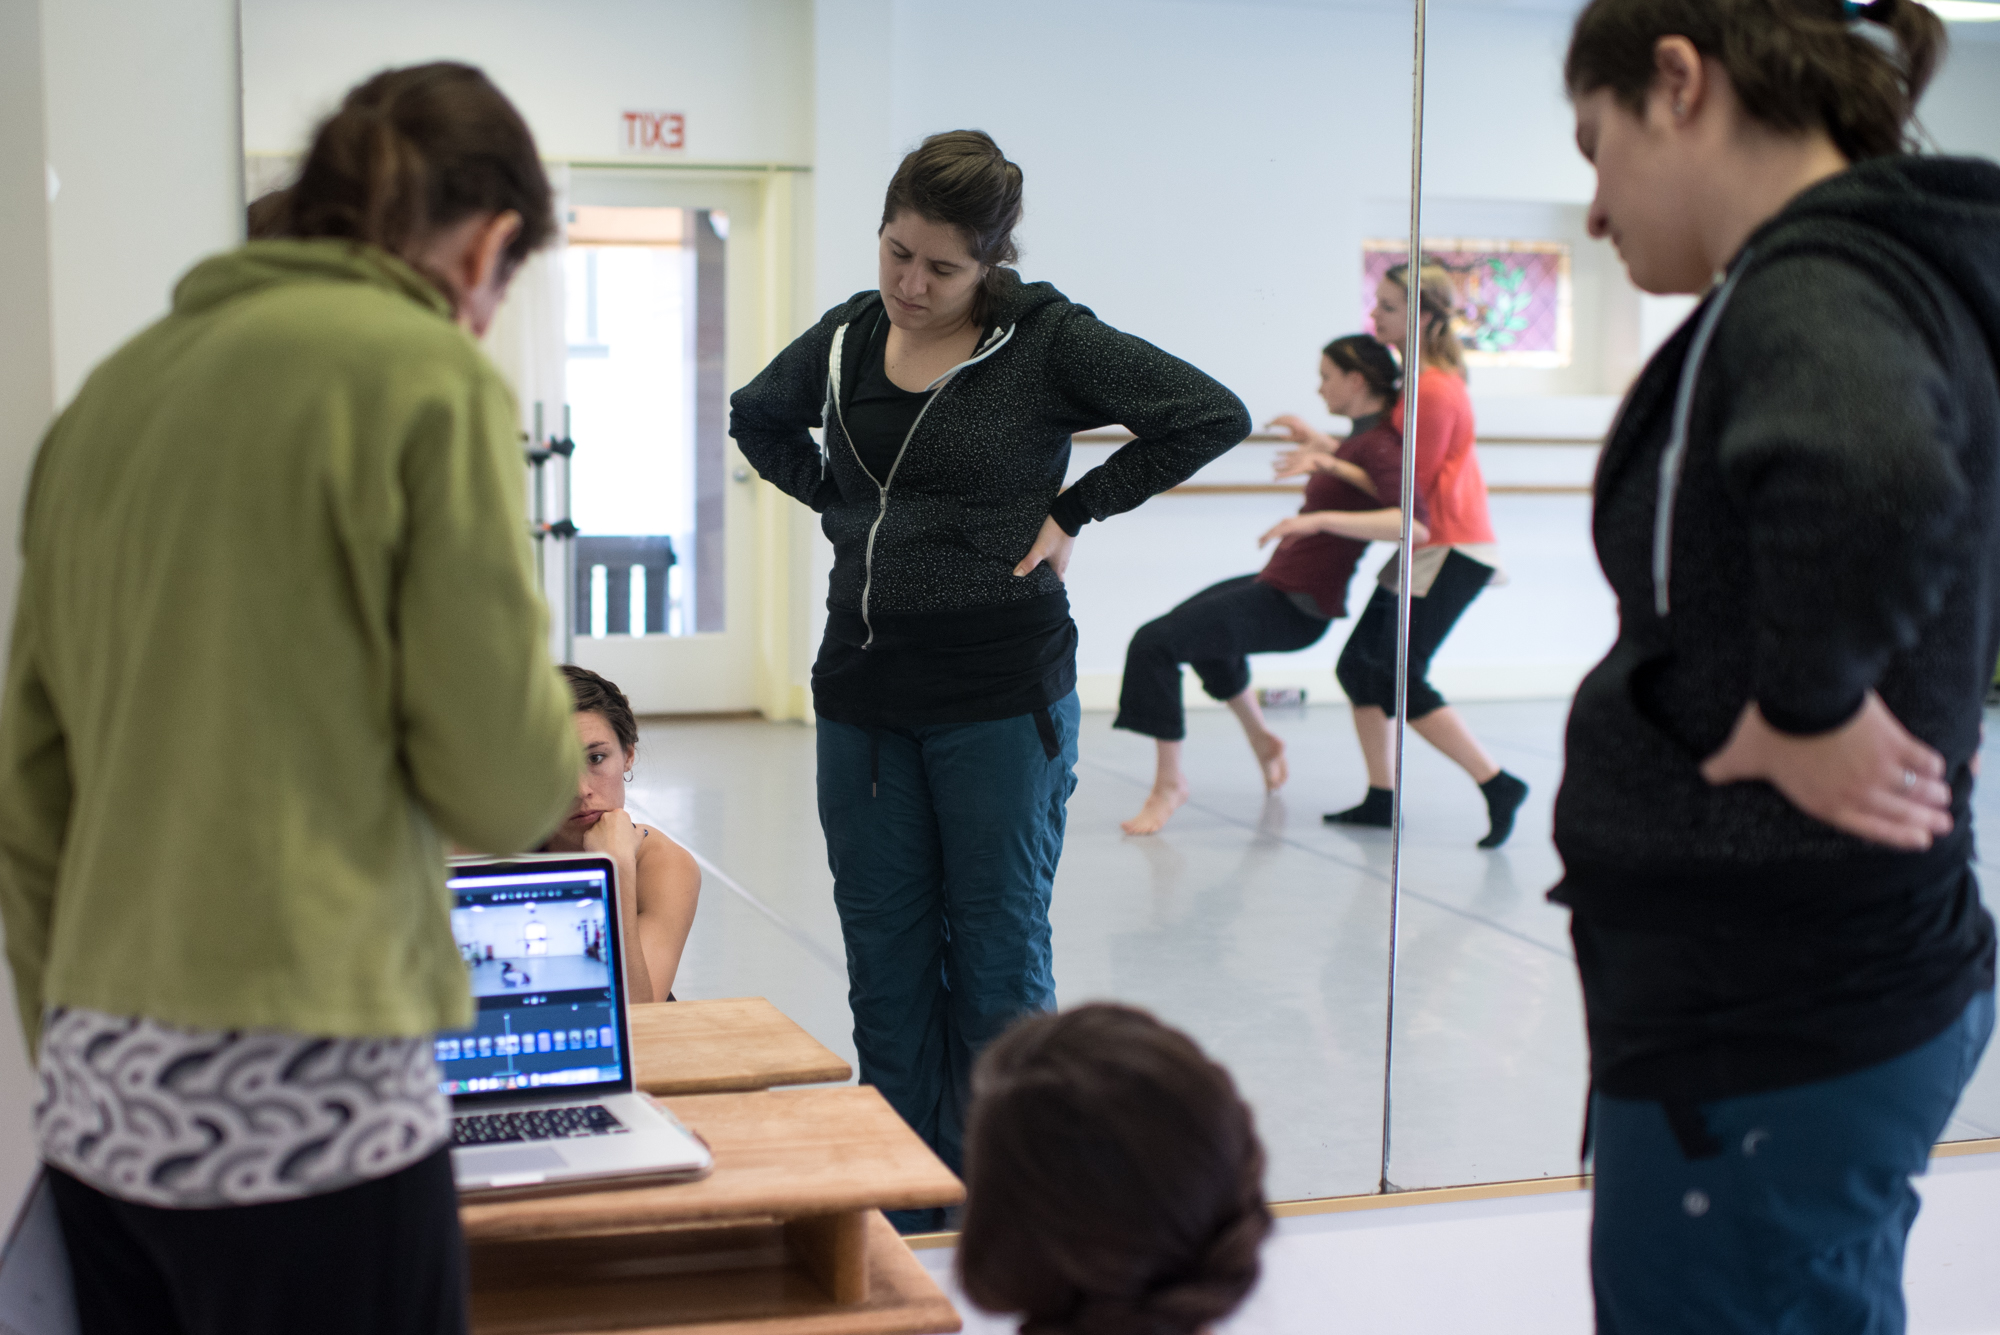 Rehearsal photos by Hillary Goidell